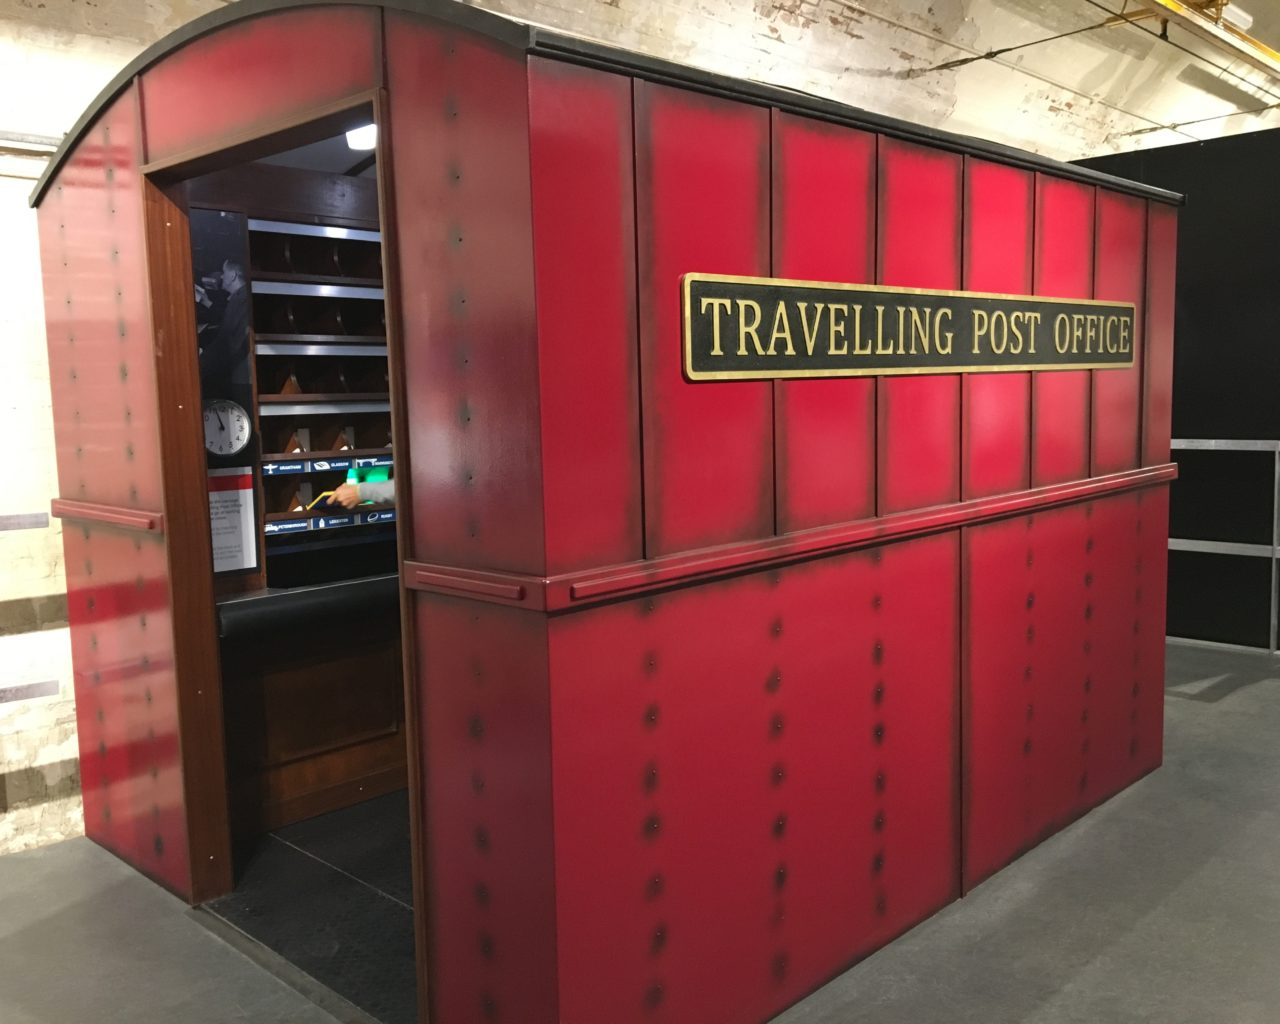 Mail Rail Exhibition - Travelling Post Office